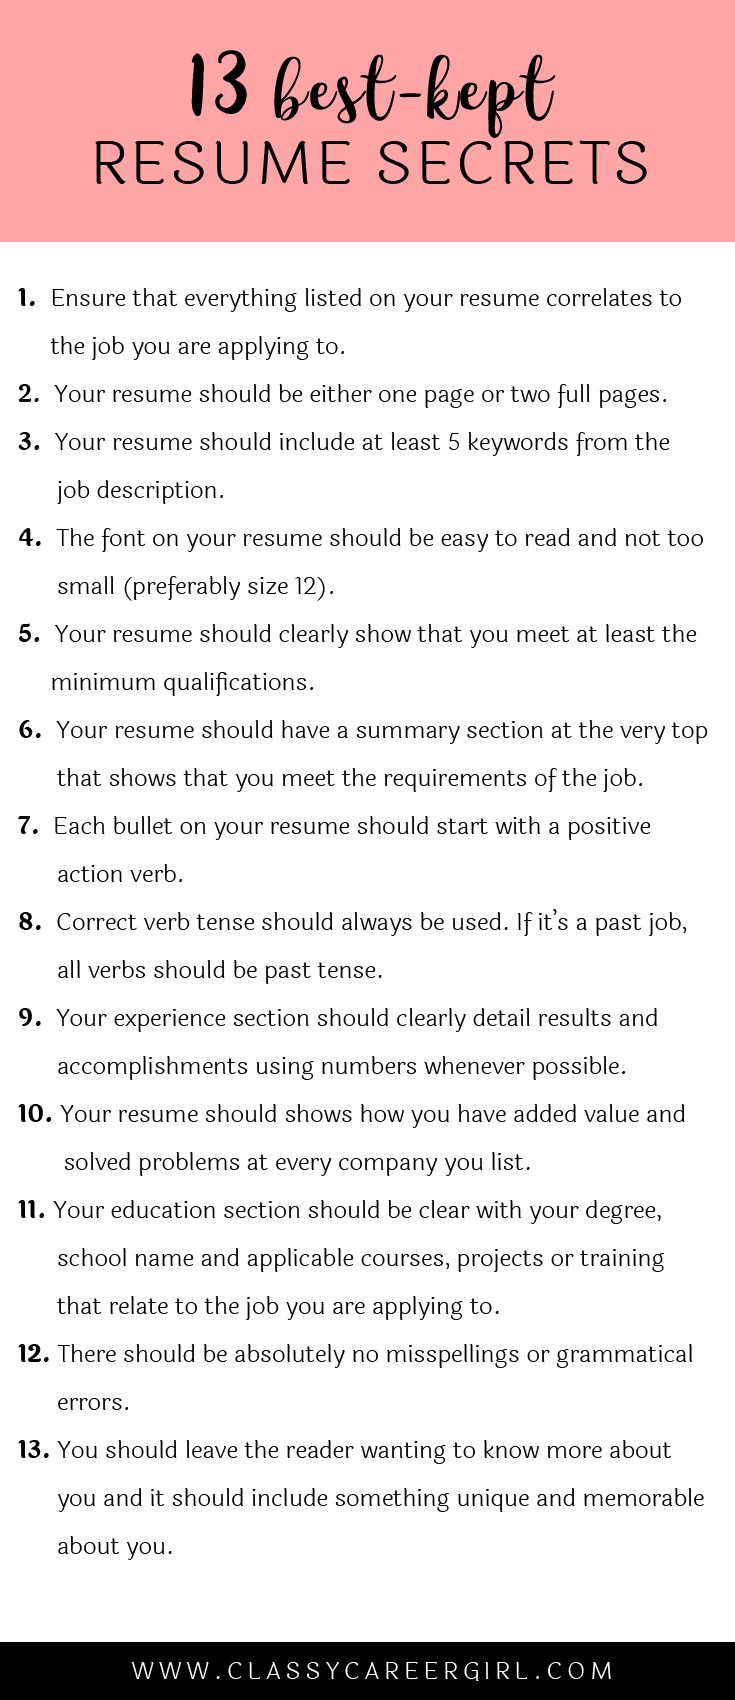 Opposenewapstandardsus  Fascinating  Ideas About Resume On Pinterest  Cv Format Resume Cv And  With Hot Some Hiring Managers Will Toss Your Resume Out If You Dont Know These  With Alluring Indeed Resume Builder Also Free Resume Generator In Addition How Do You Do A Resume And What Is A Chronological Resume As Well As Resume Infographic Additionally Lvn Resume From Pinterestcom With Opposenewapstandardsus  Hot  Ideas About Resume On Pinterest  Cv Format Resume Cv And  With Alluring Some Hiring Managers Will Toss Your Resume Out If You Dont Know These  And Fascinating Indeed Resume Builder Also Free Resume Generator In Addition How Do You Do A Resume From Pinterestcom